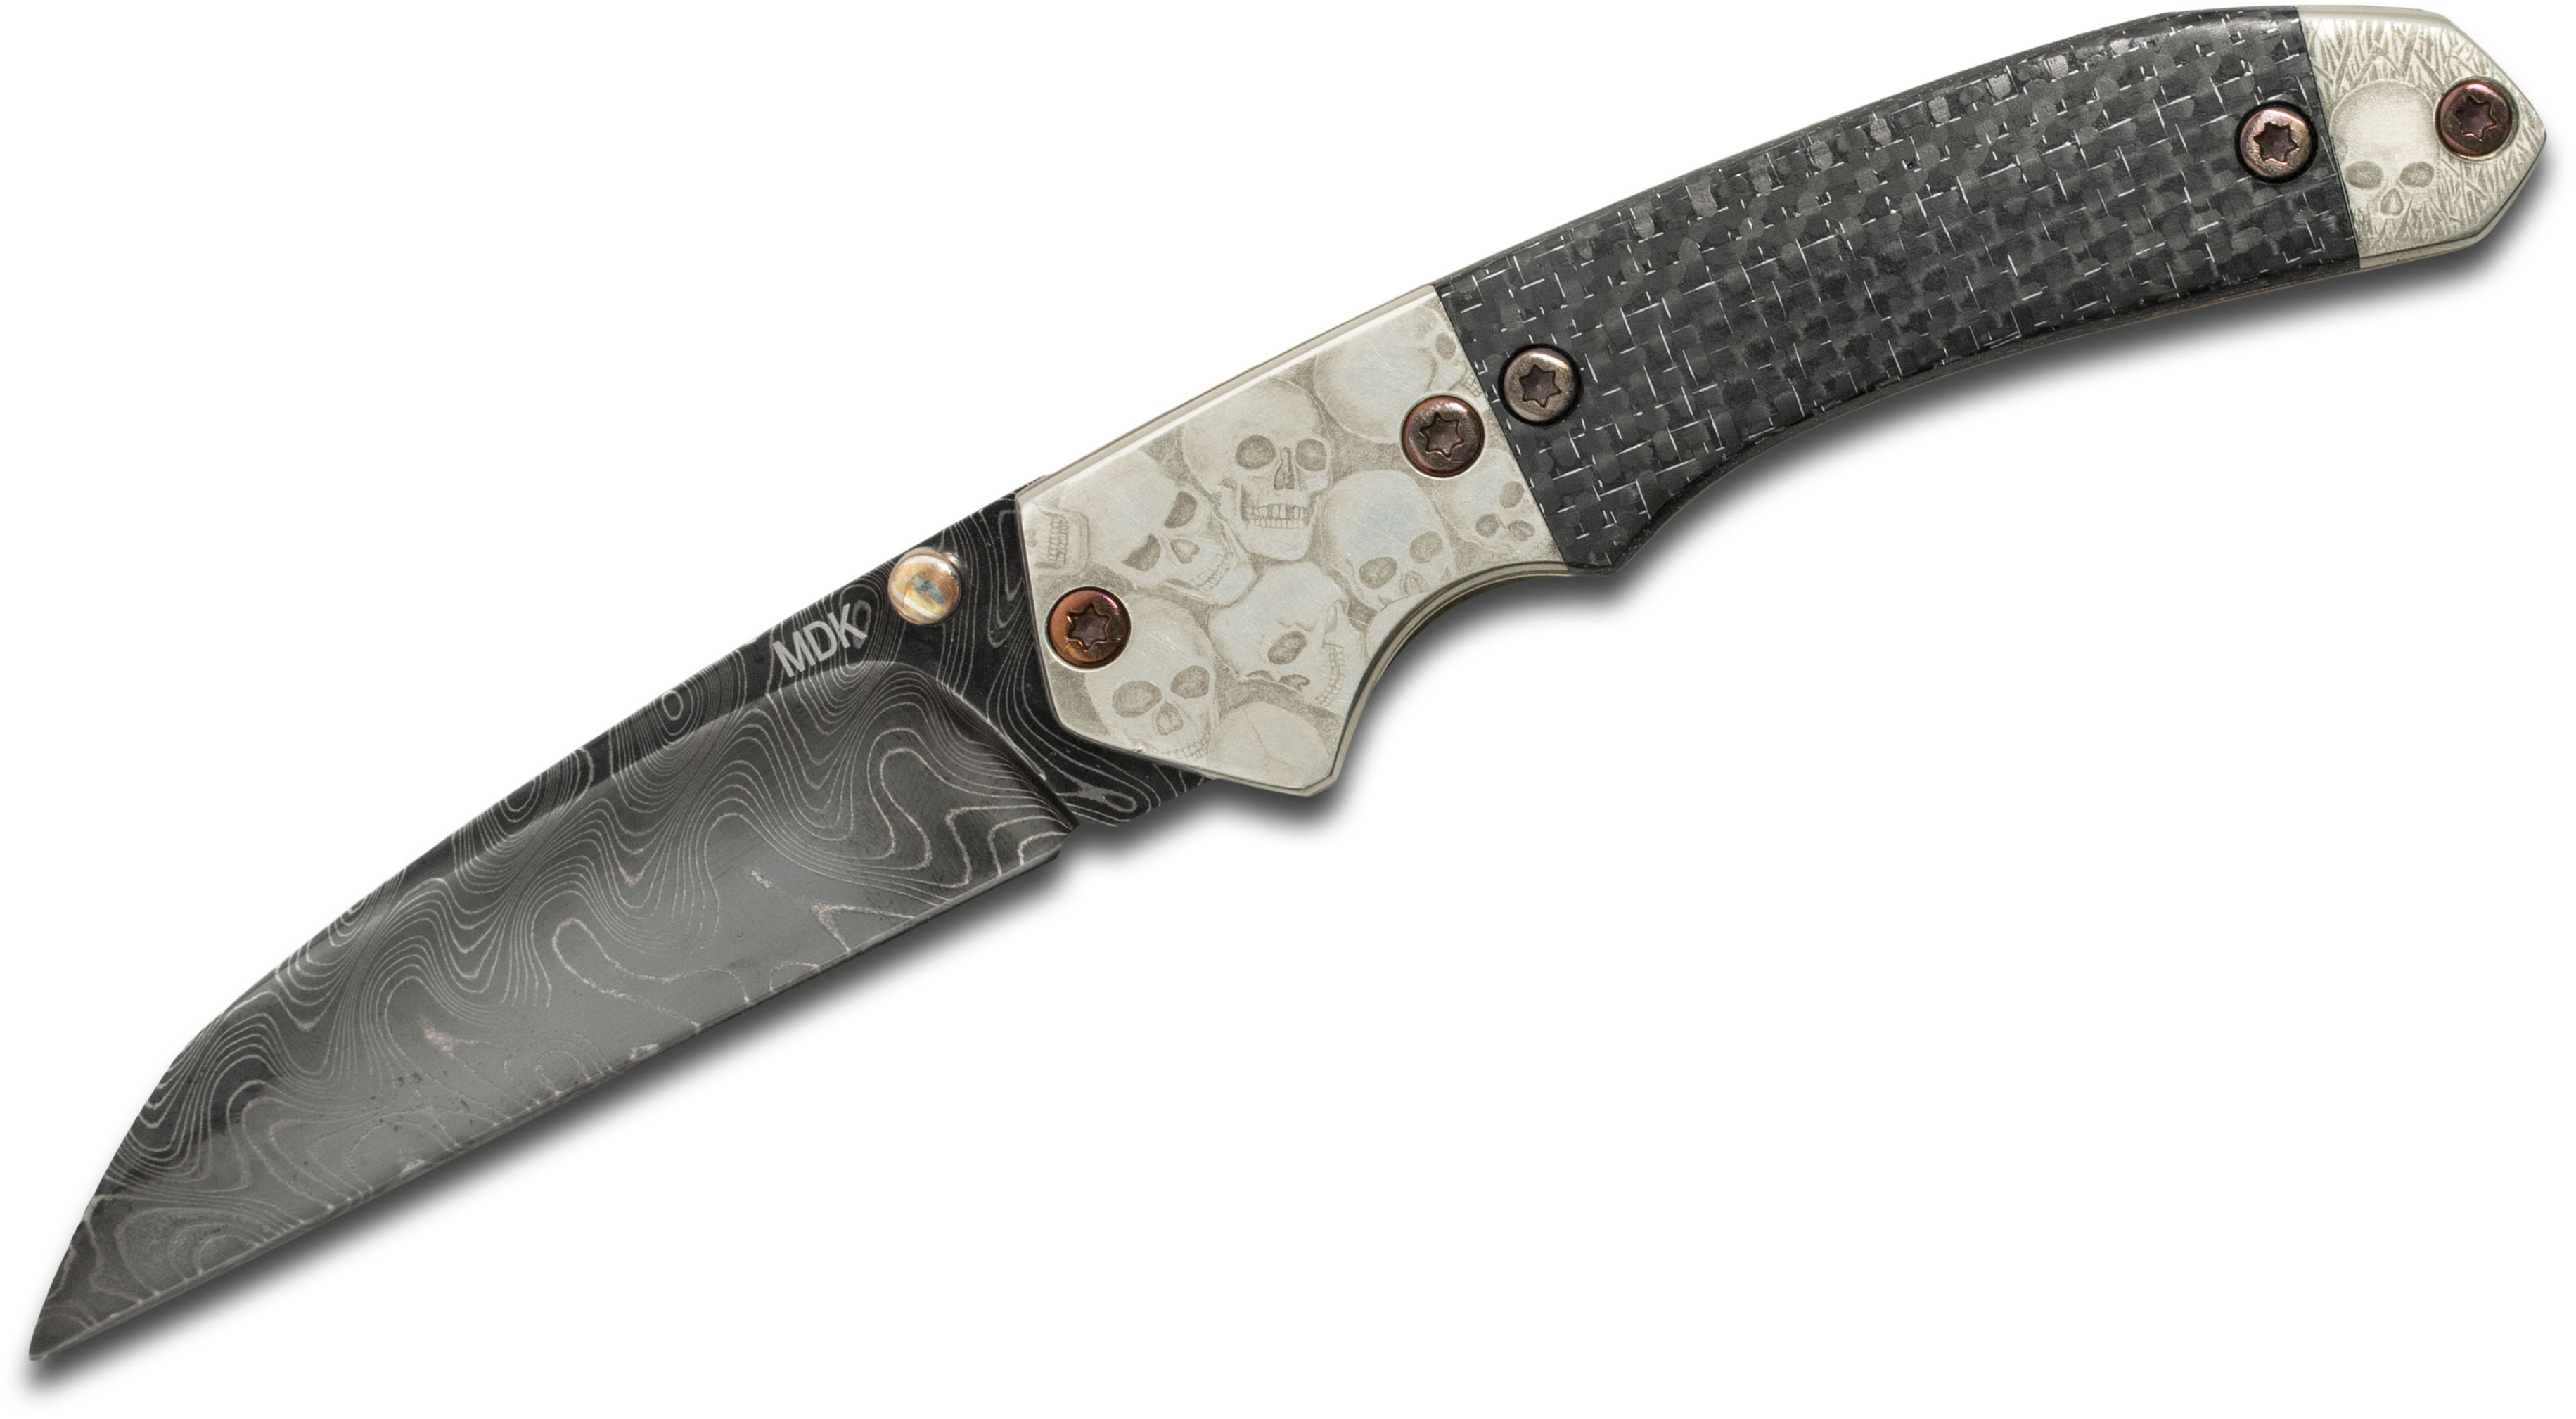 Mr Damascus Knives Tactical Folding Knife 3.375 inch Fade Damascus Wharncliffe Blade, Silver Lightning Strike Carbon Fiber Handles with Bulino Engraved Bolsters